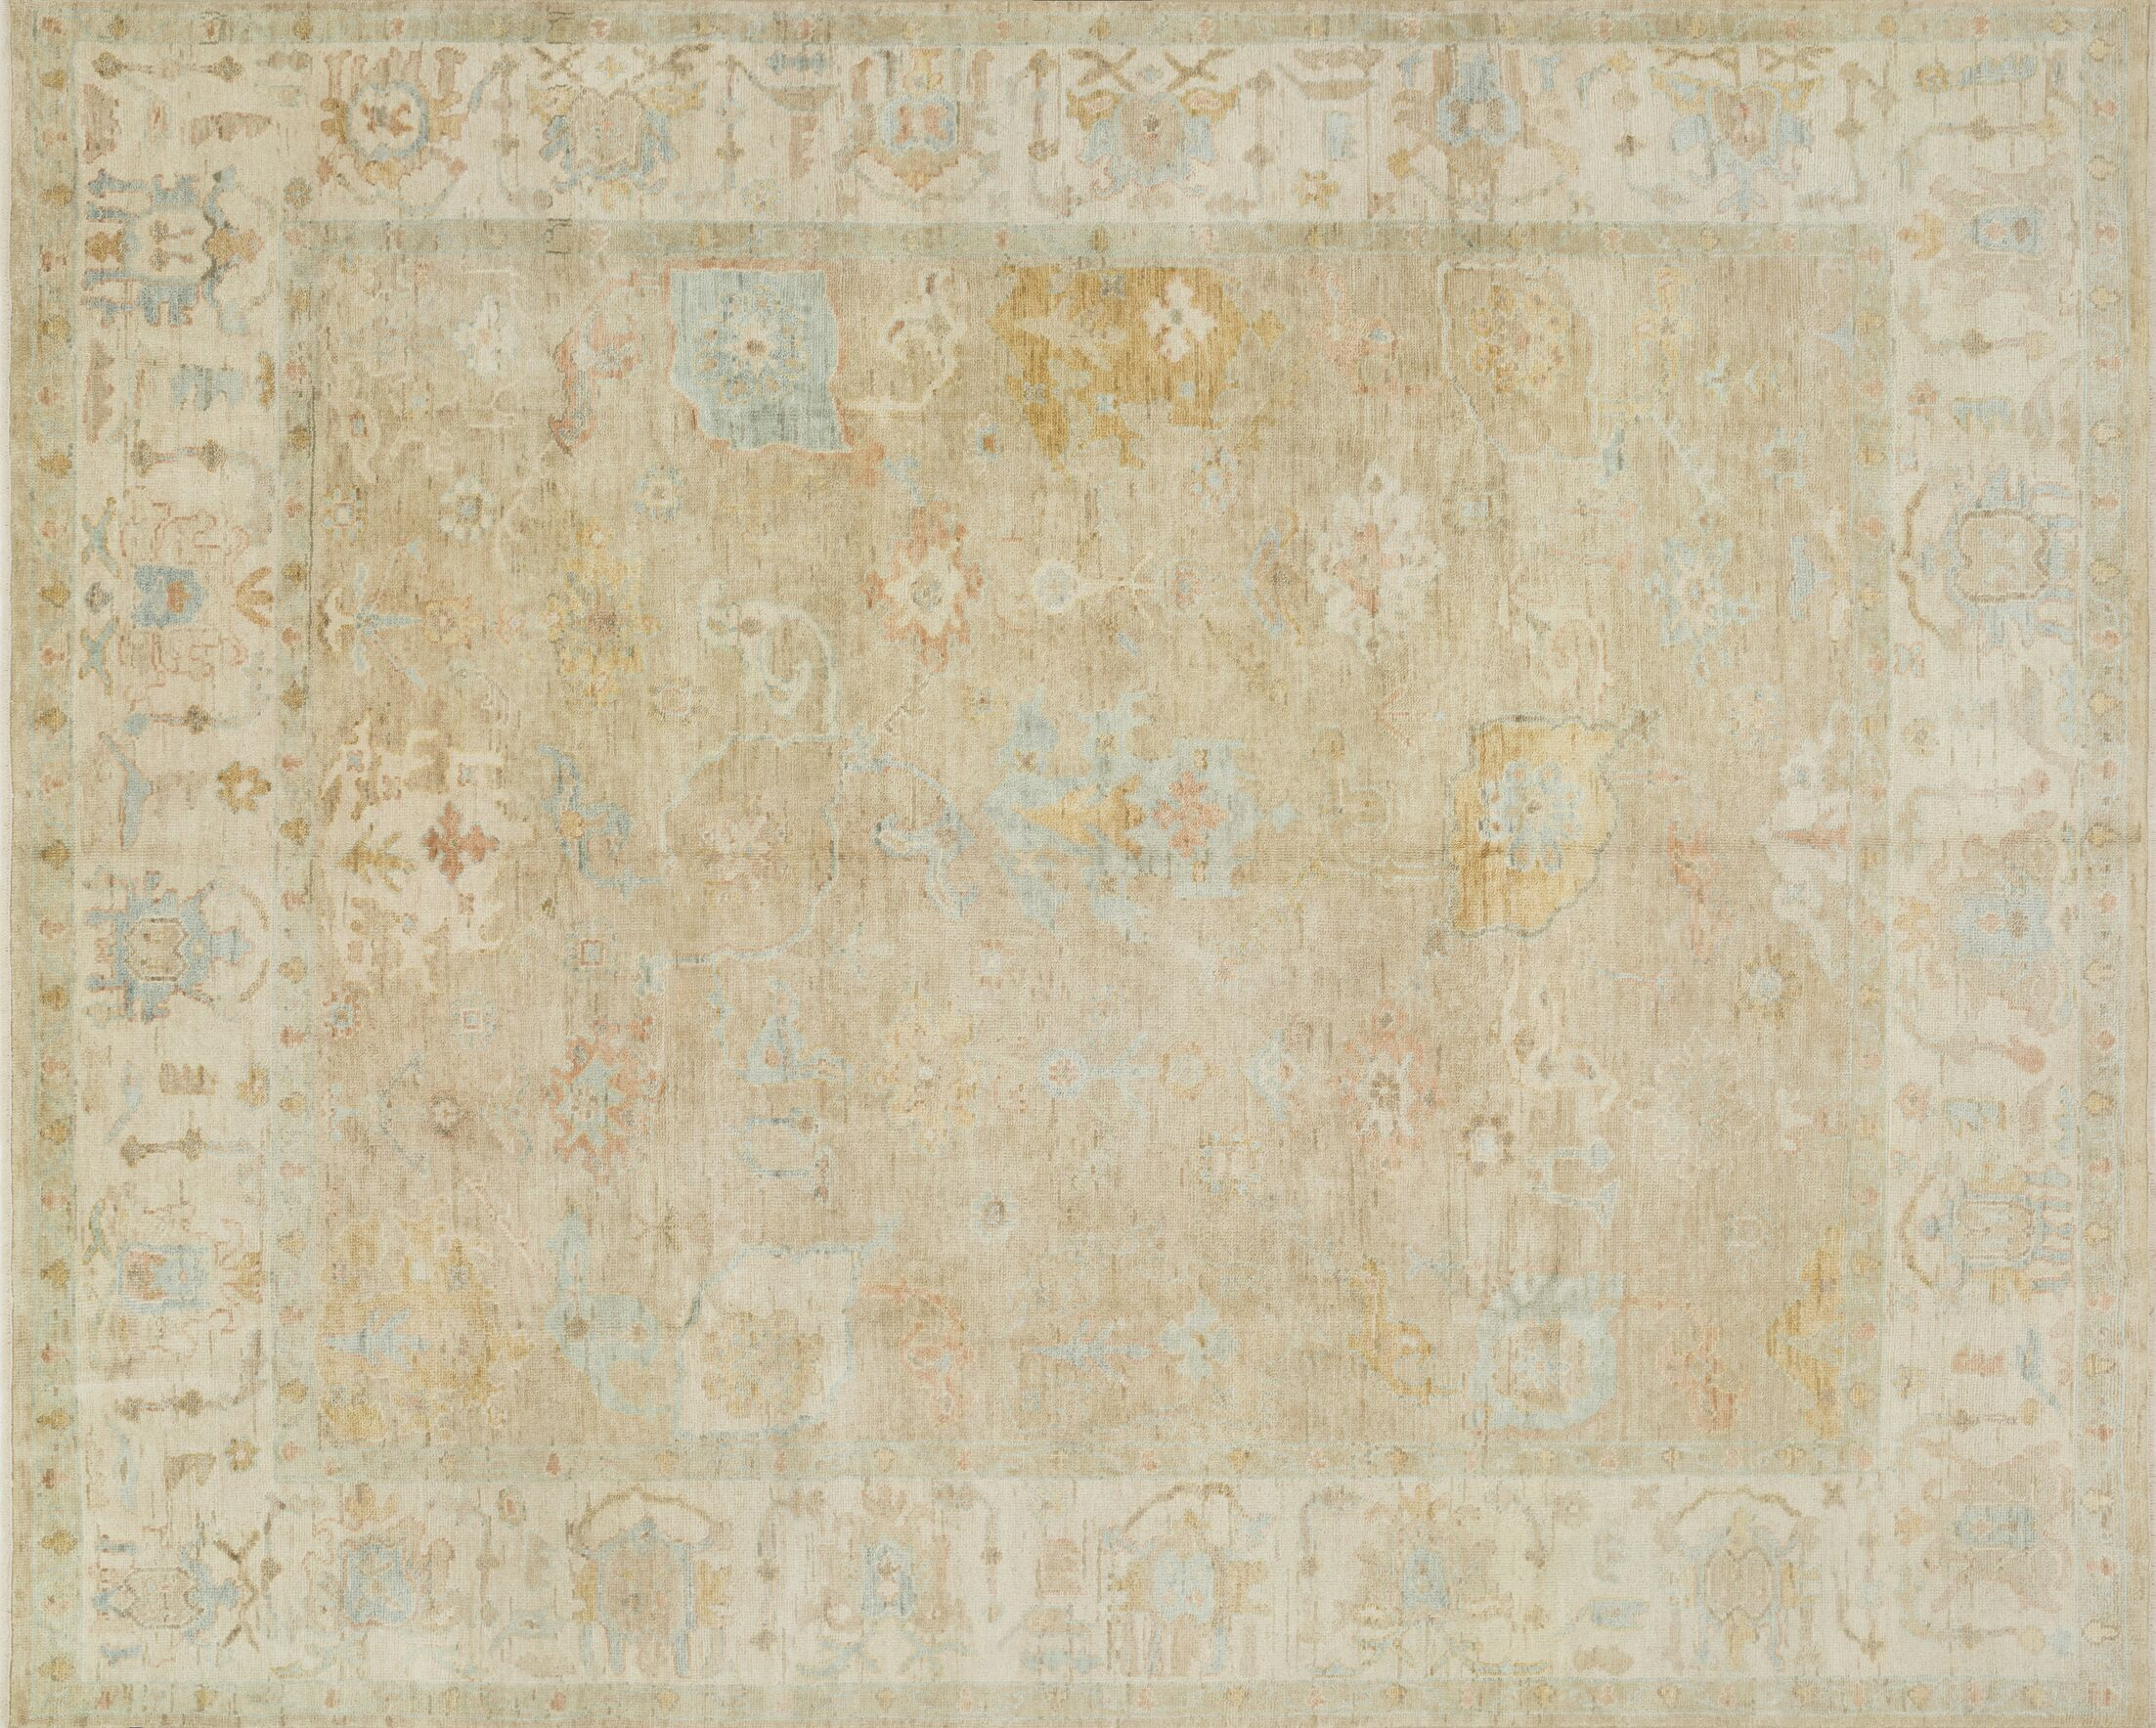 Abelard Hand-Knotted Beige Area Rug Rug Size: Rectangle 4' x 6'